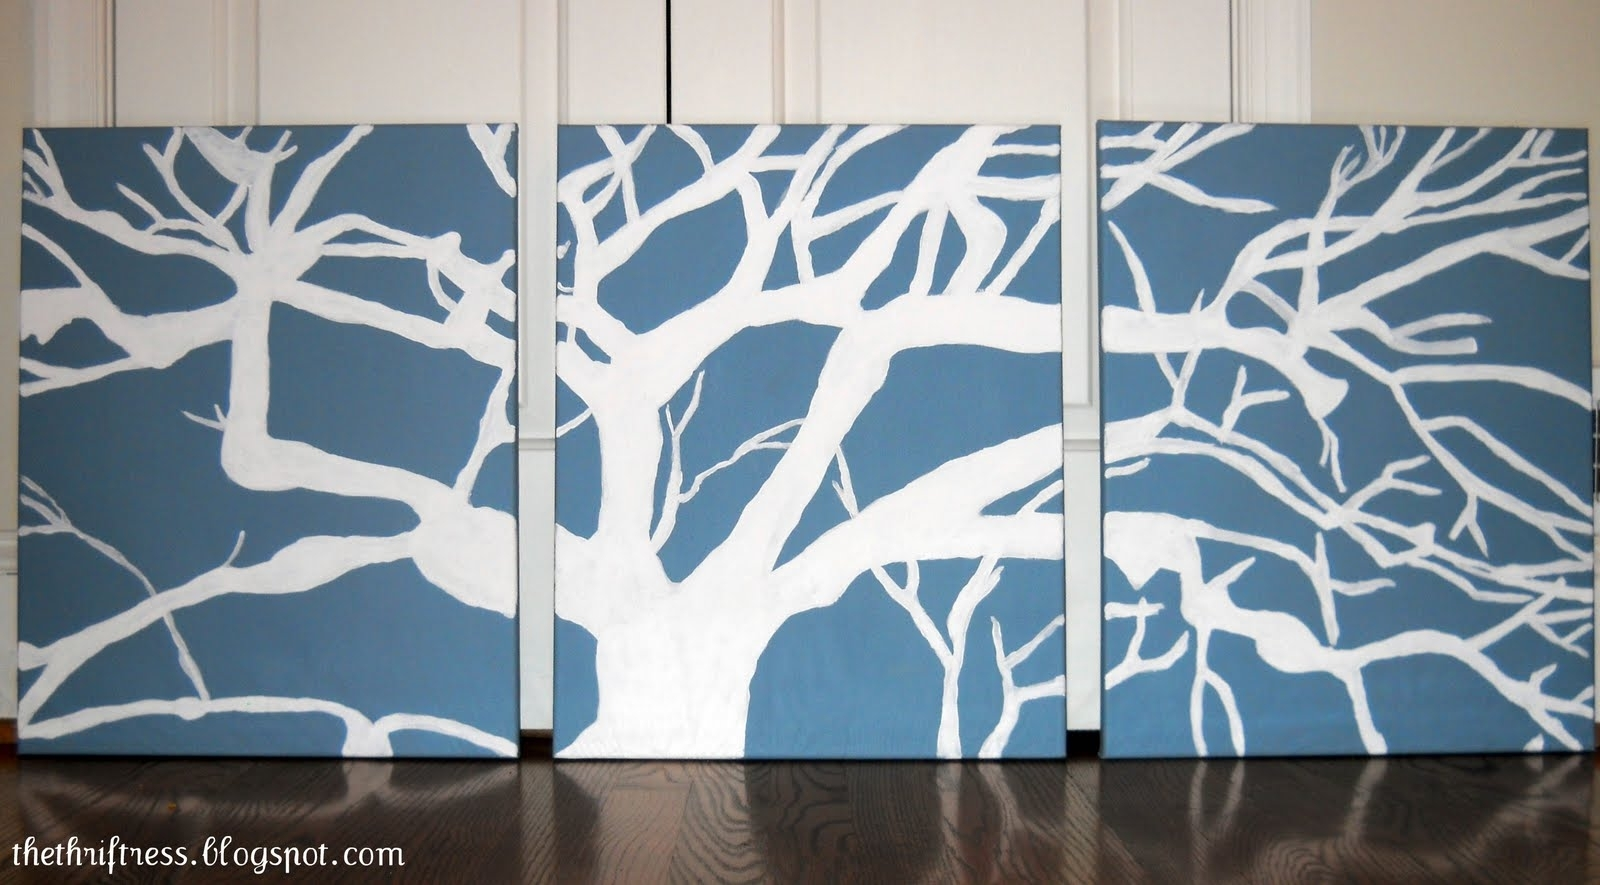 Diy Wall Art Stencils Paint Fabric – Dma Homes | #37854 Inside Newest Large Fabric Wall Art (View 13 of 15)